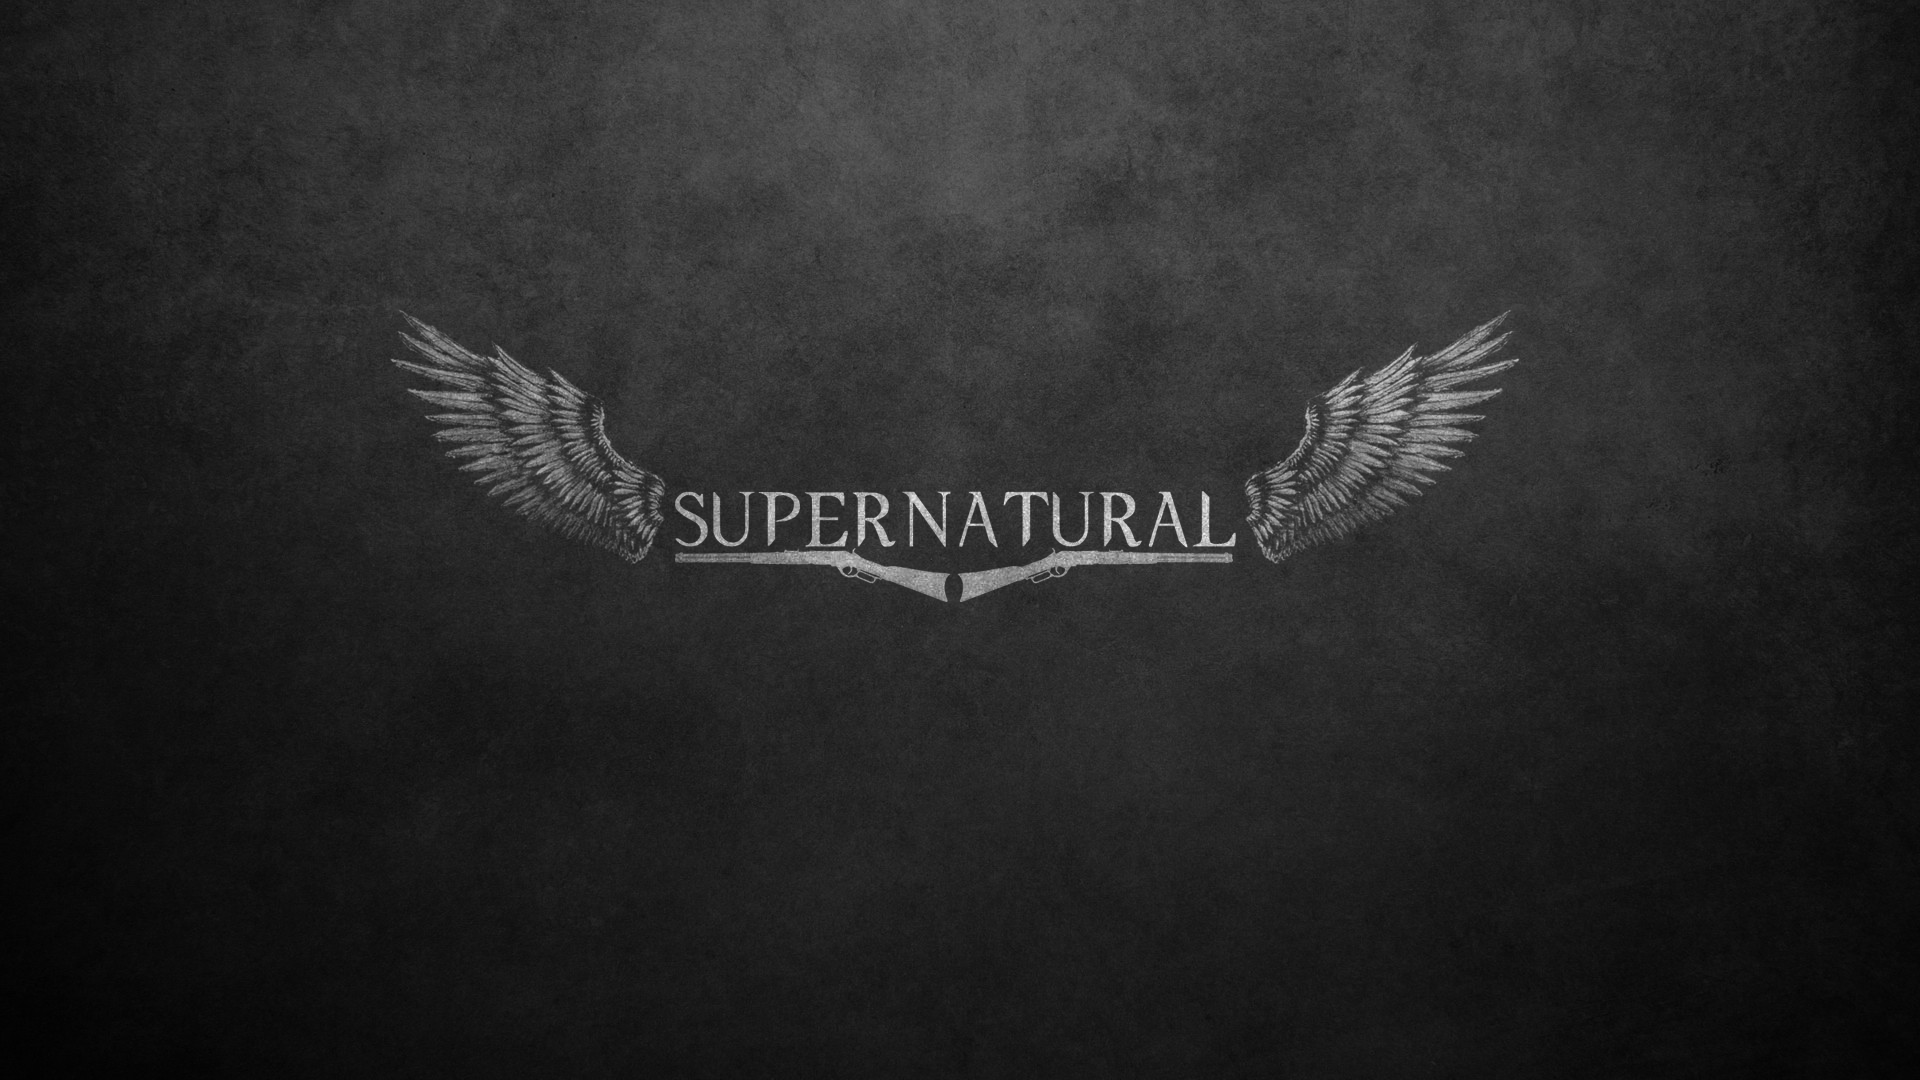 supernatural wallpapers desktop free HD Desktop Wallpapers 4k HD